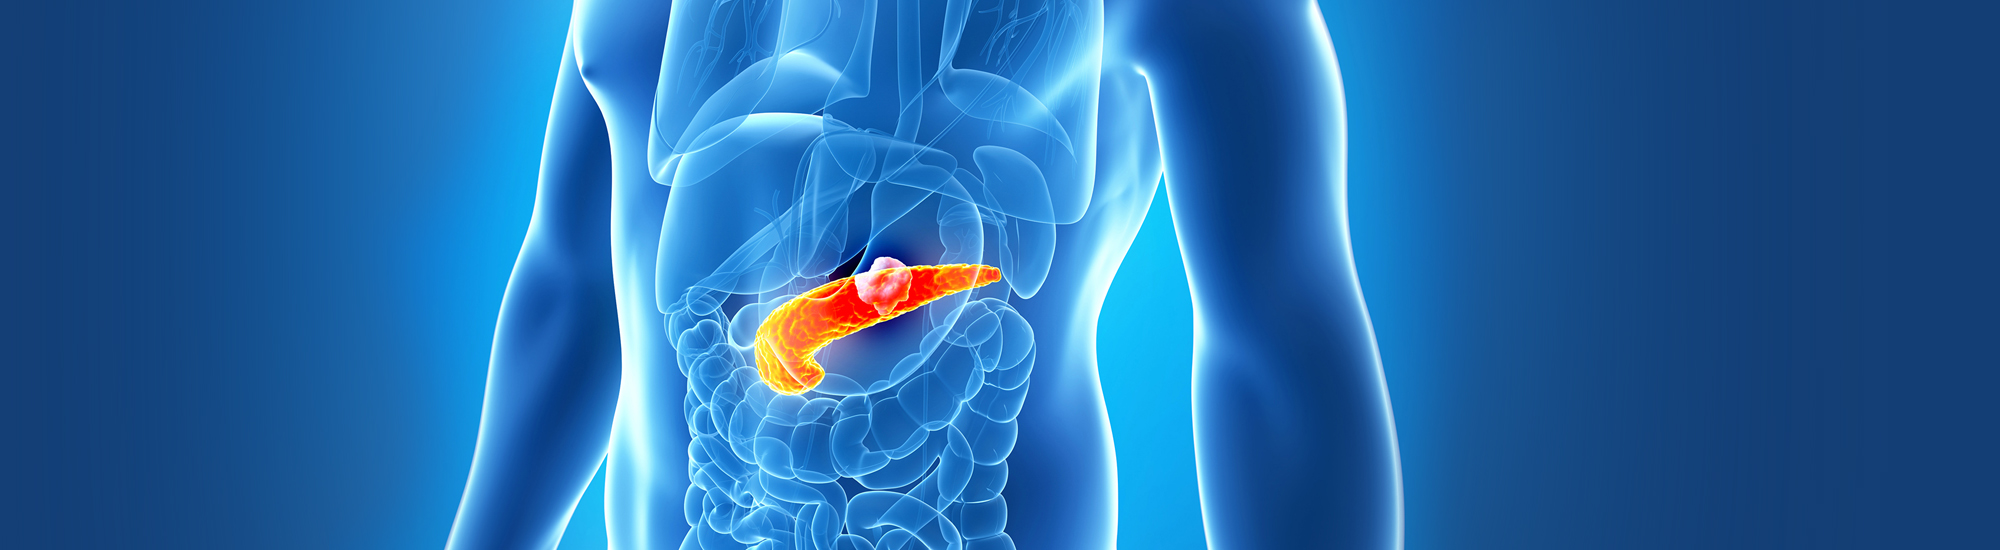 Ayurvedic treatment for Pancreatitis References